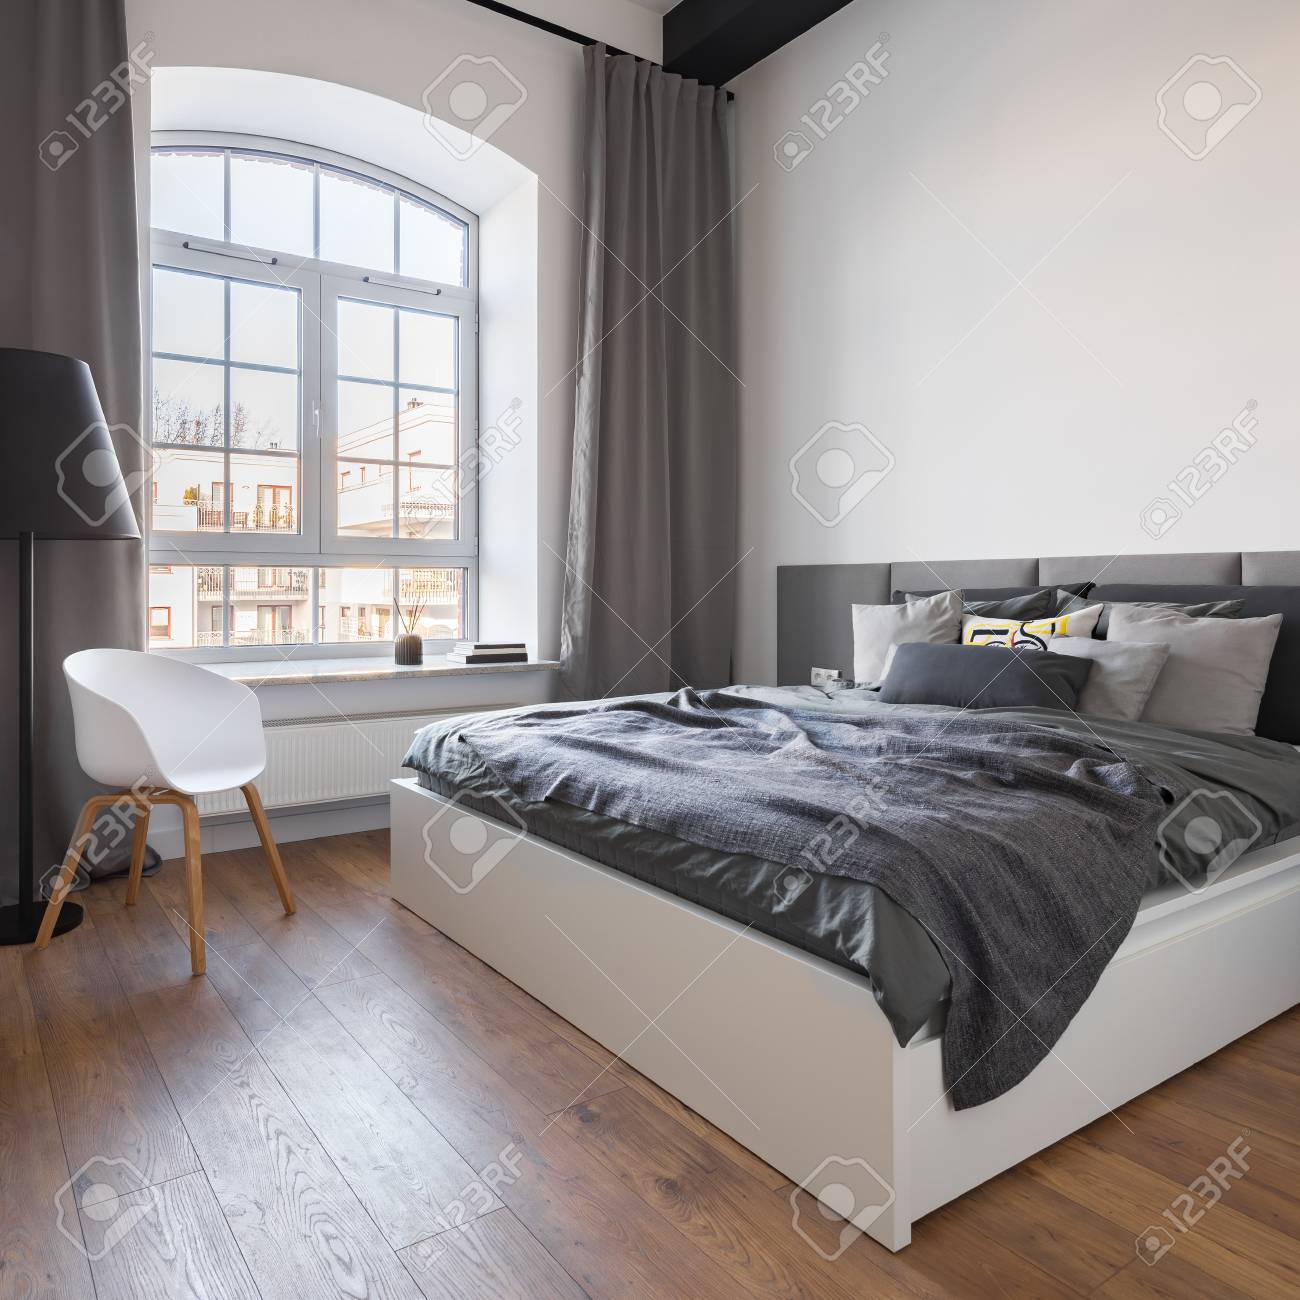 Scandinavian Furniture Bed Gray Bedroom With Big Window Double Bed And White Chair In Scandinavian